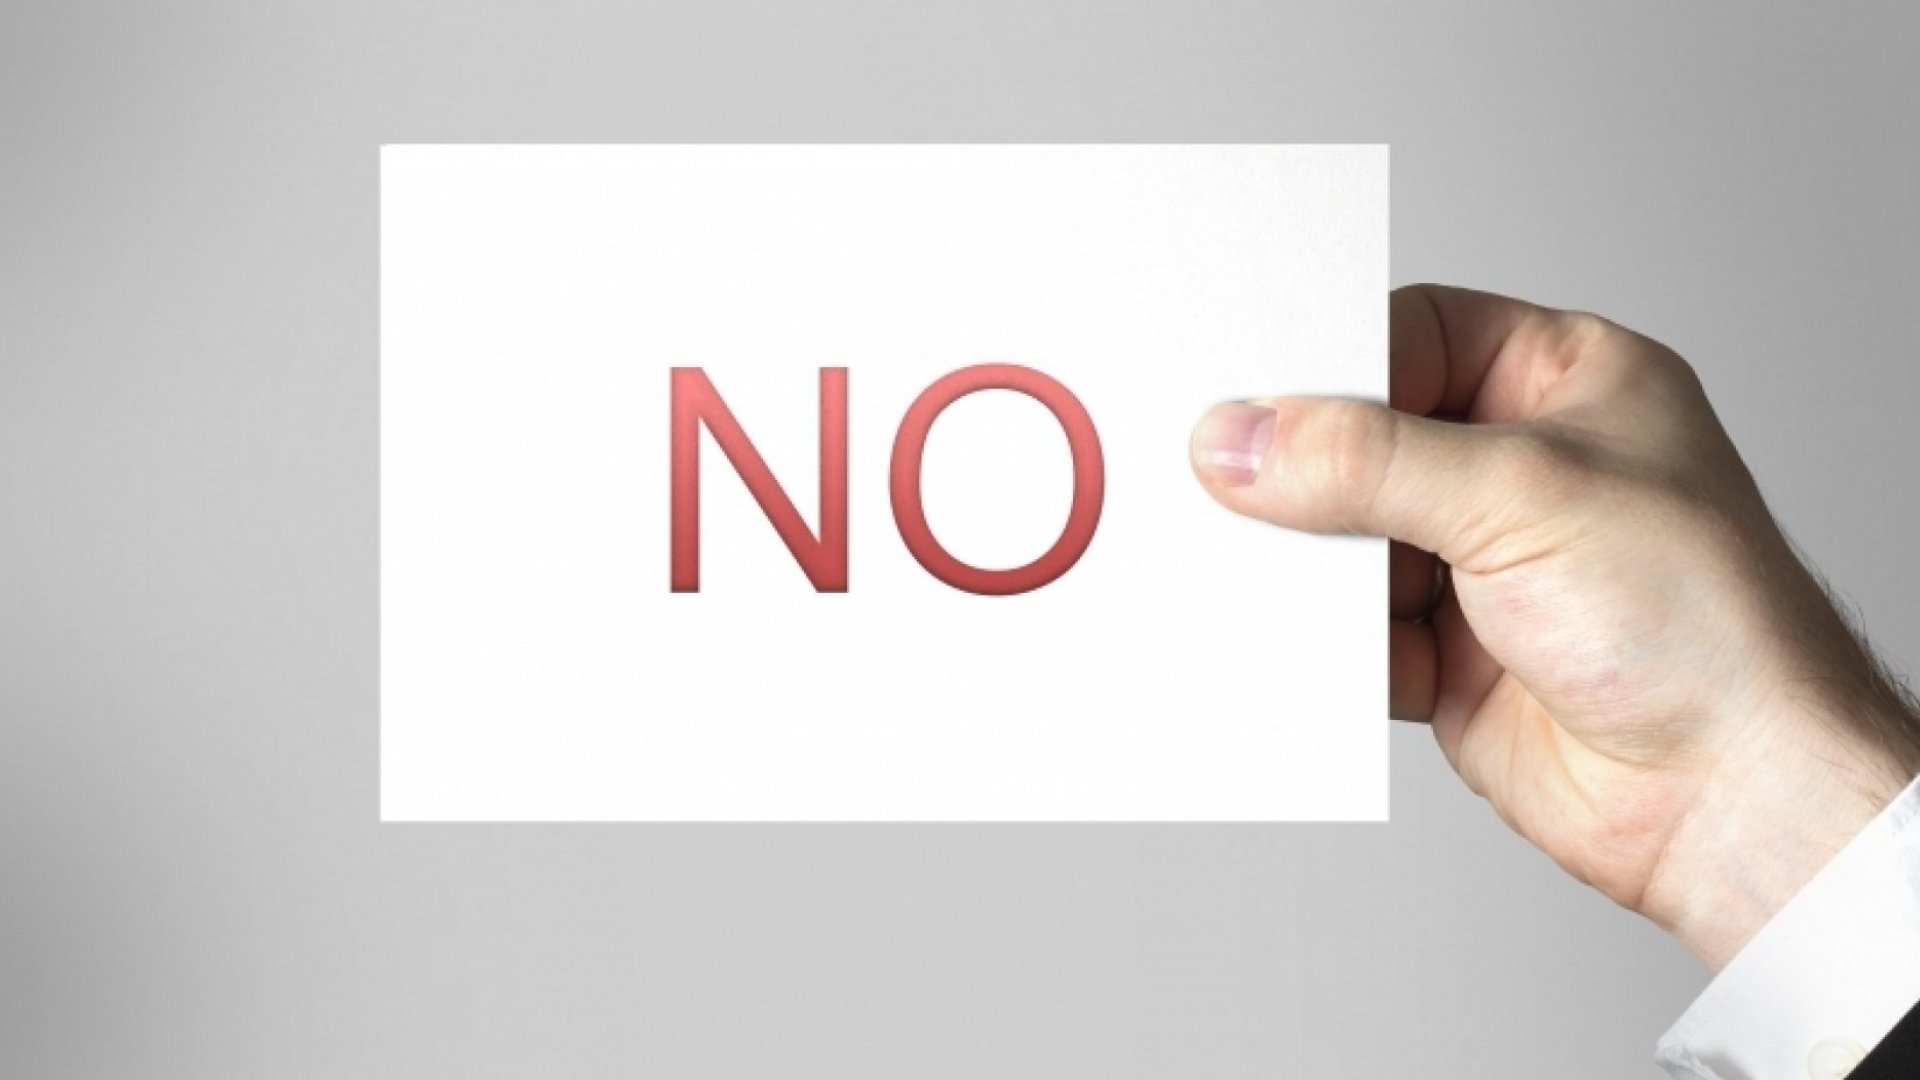 7 Tips for Saying No Effectively